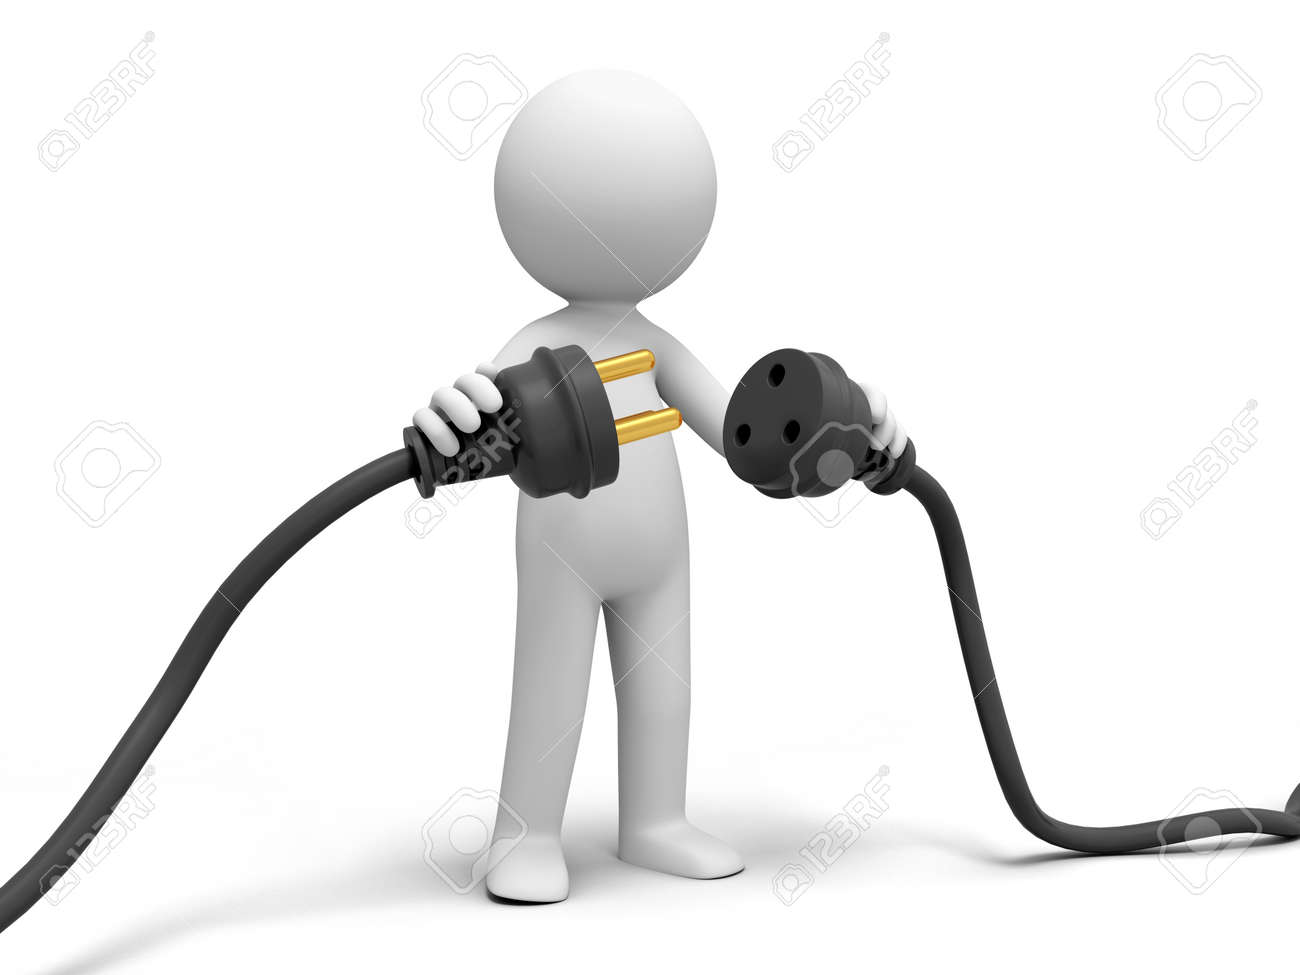 Plug powder cord a person connecting plugs Stock Photo - 15457361